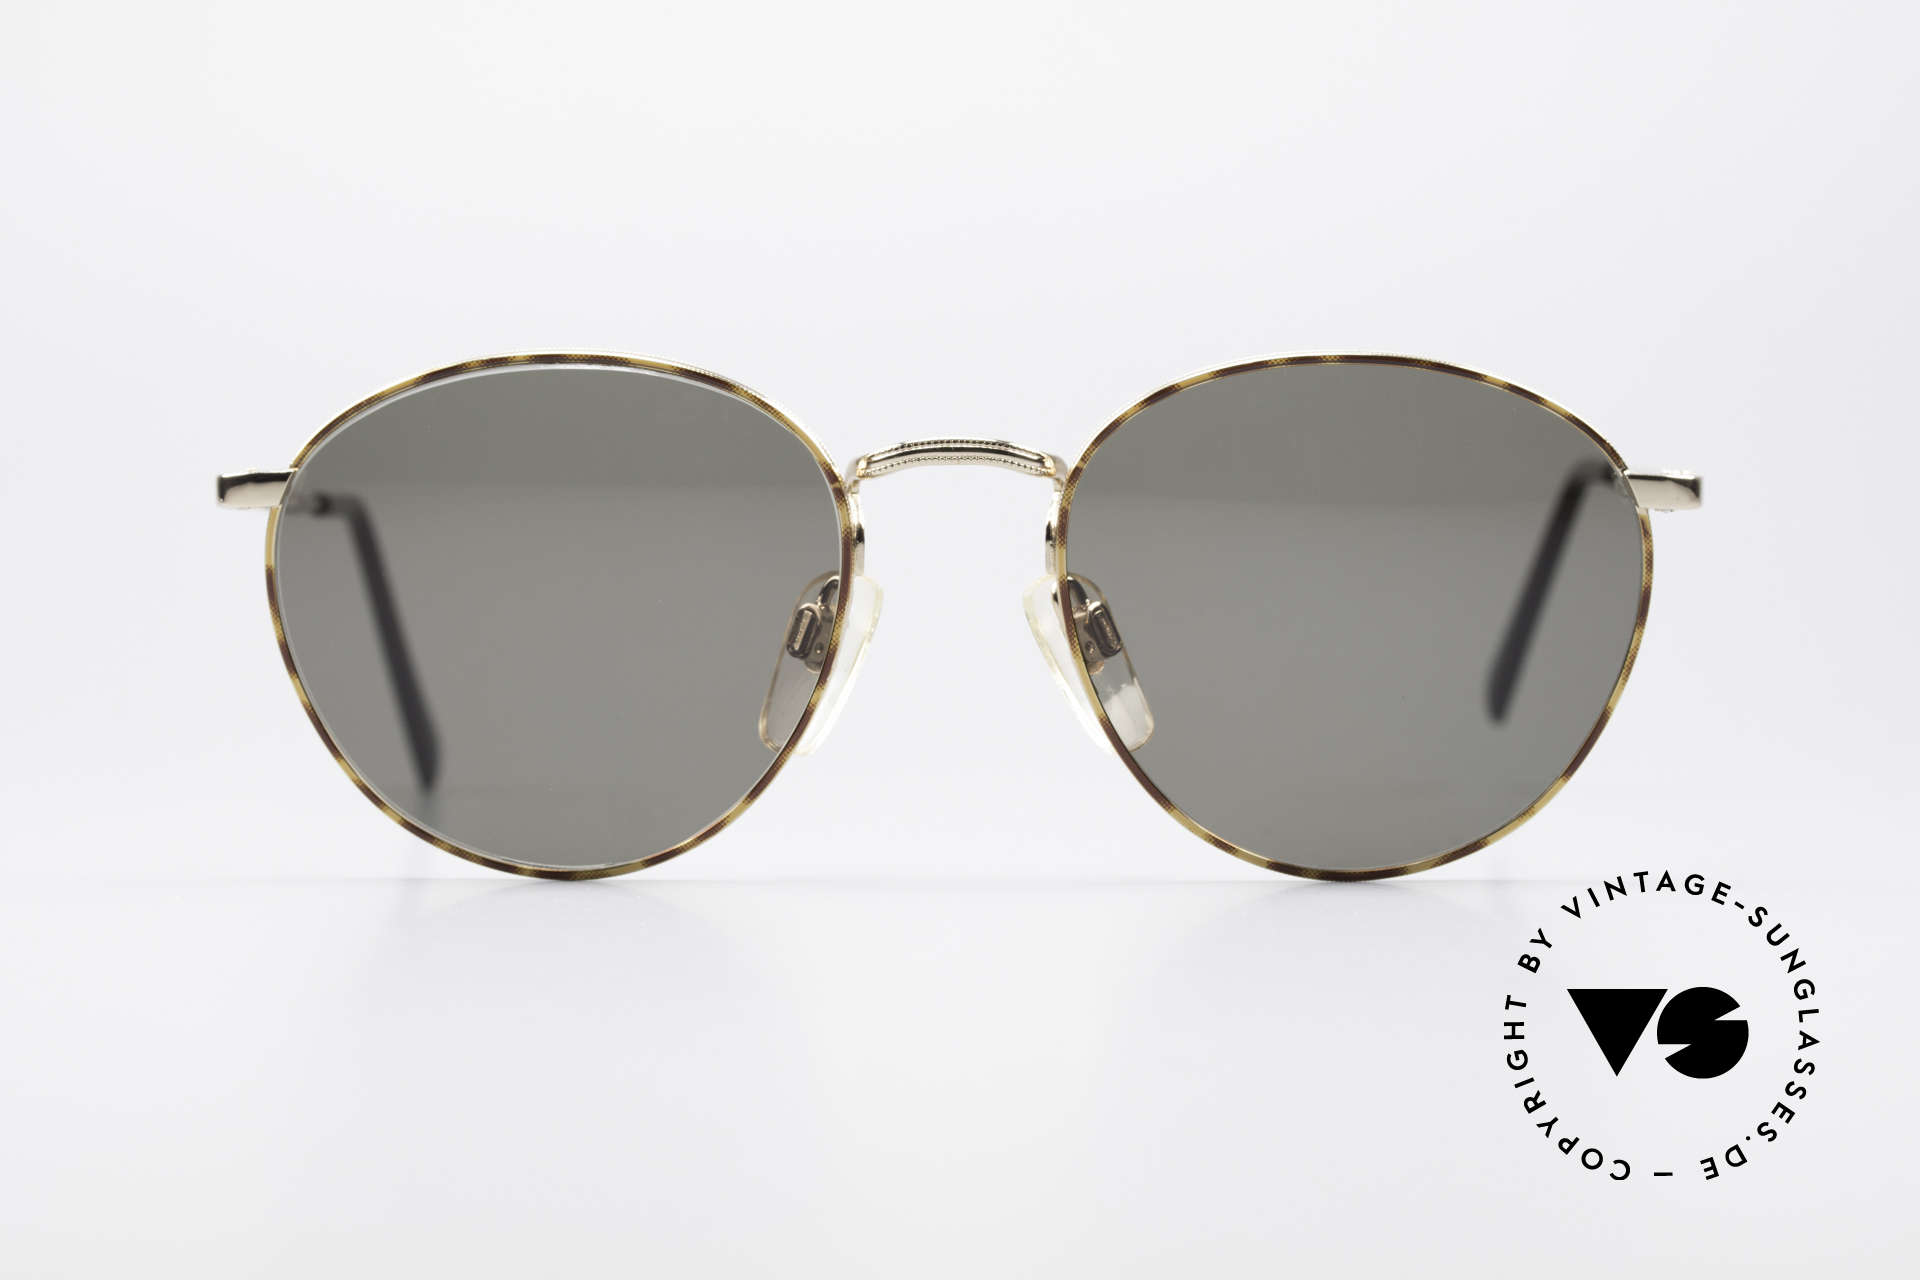 Giorgio Armani 166 Panto Sunglasses Gentlemen, classic 'panto' metal frame with flexible spring hinges, Made for Men